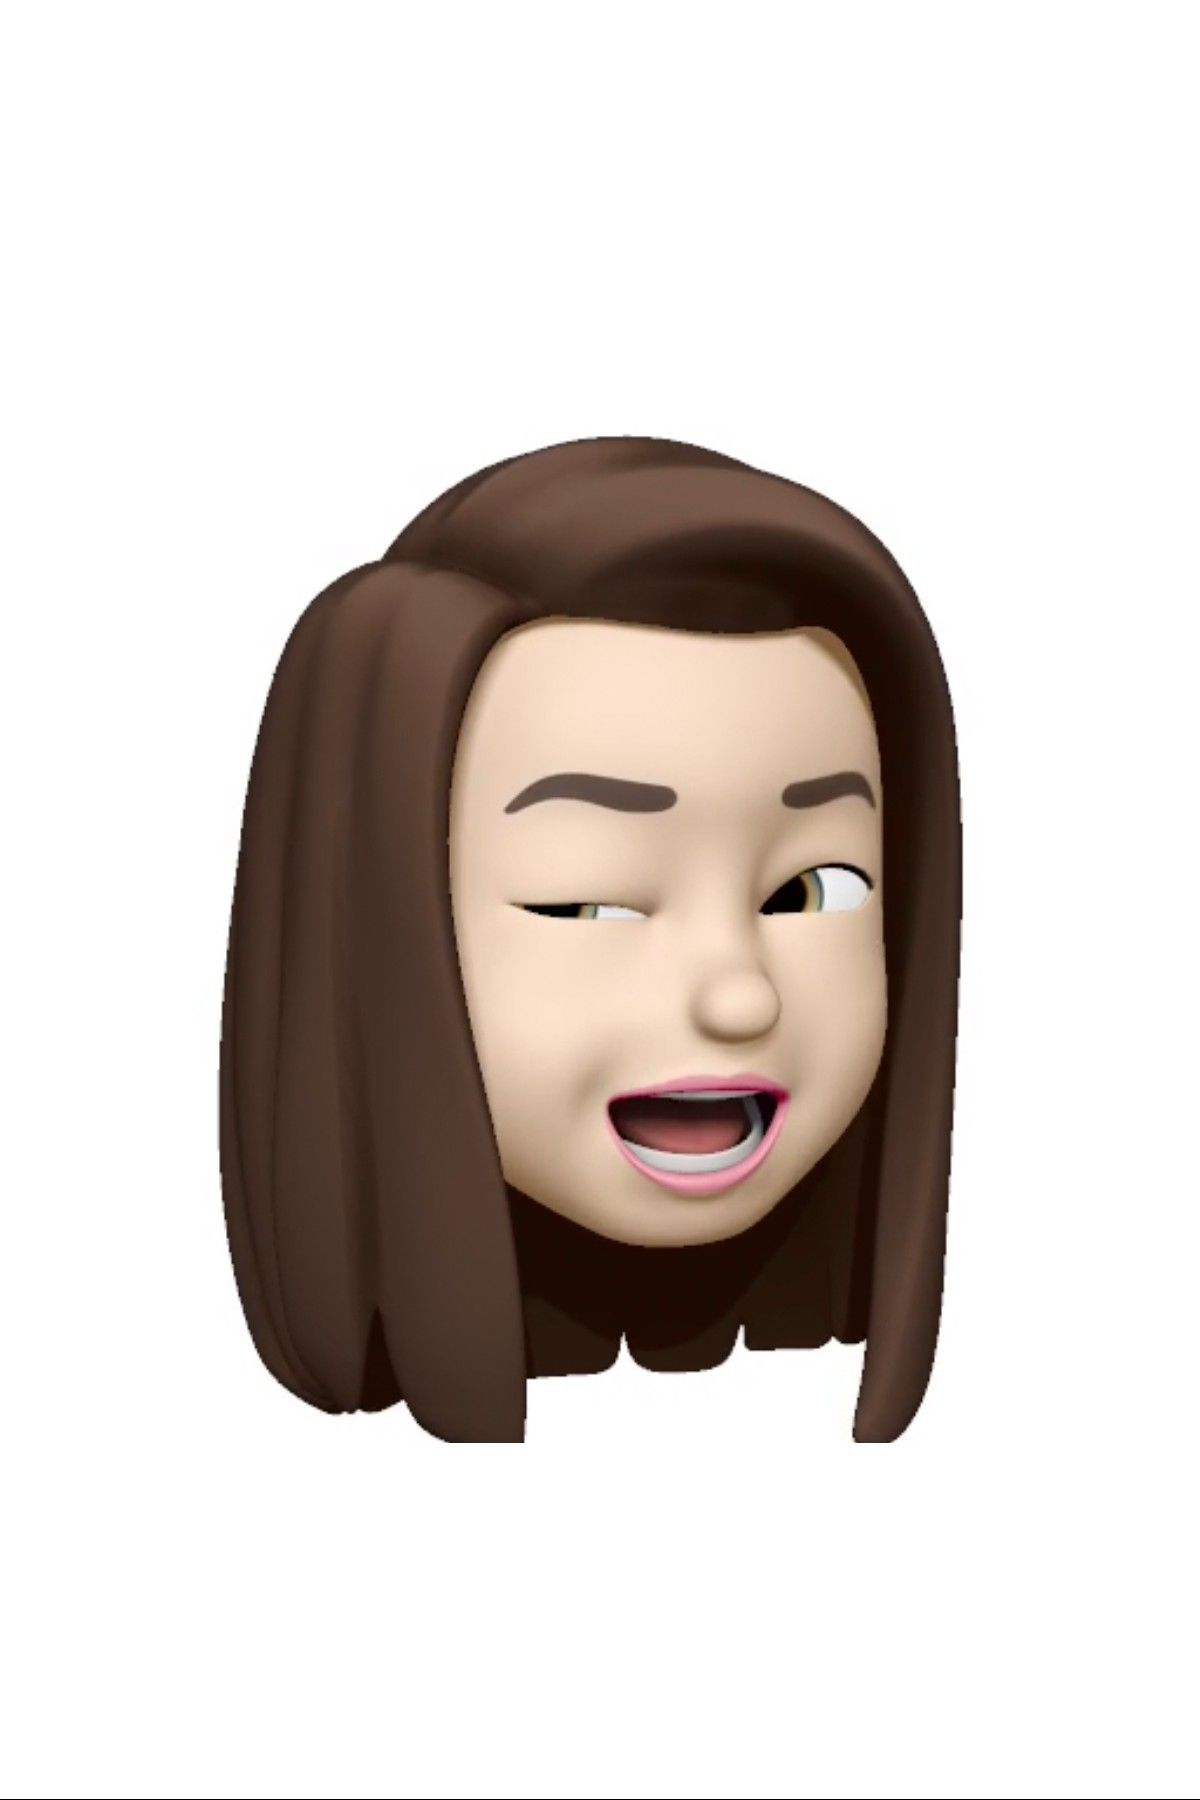 How To Make Your Own Memoji The Coolest New Feature Of Ios 12 Hipster Wallpaper Emoji Pictures Emoji Wallpaper Iphone